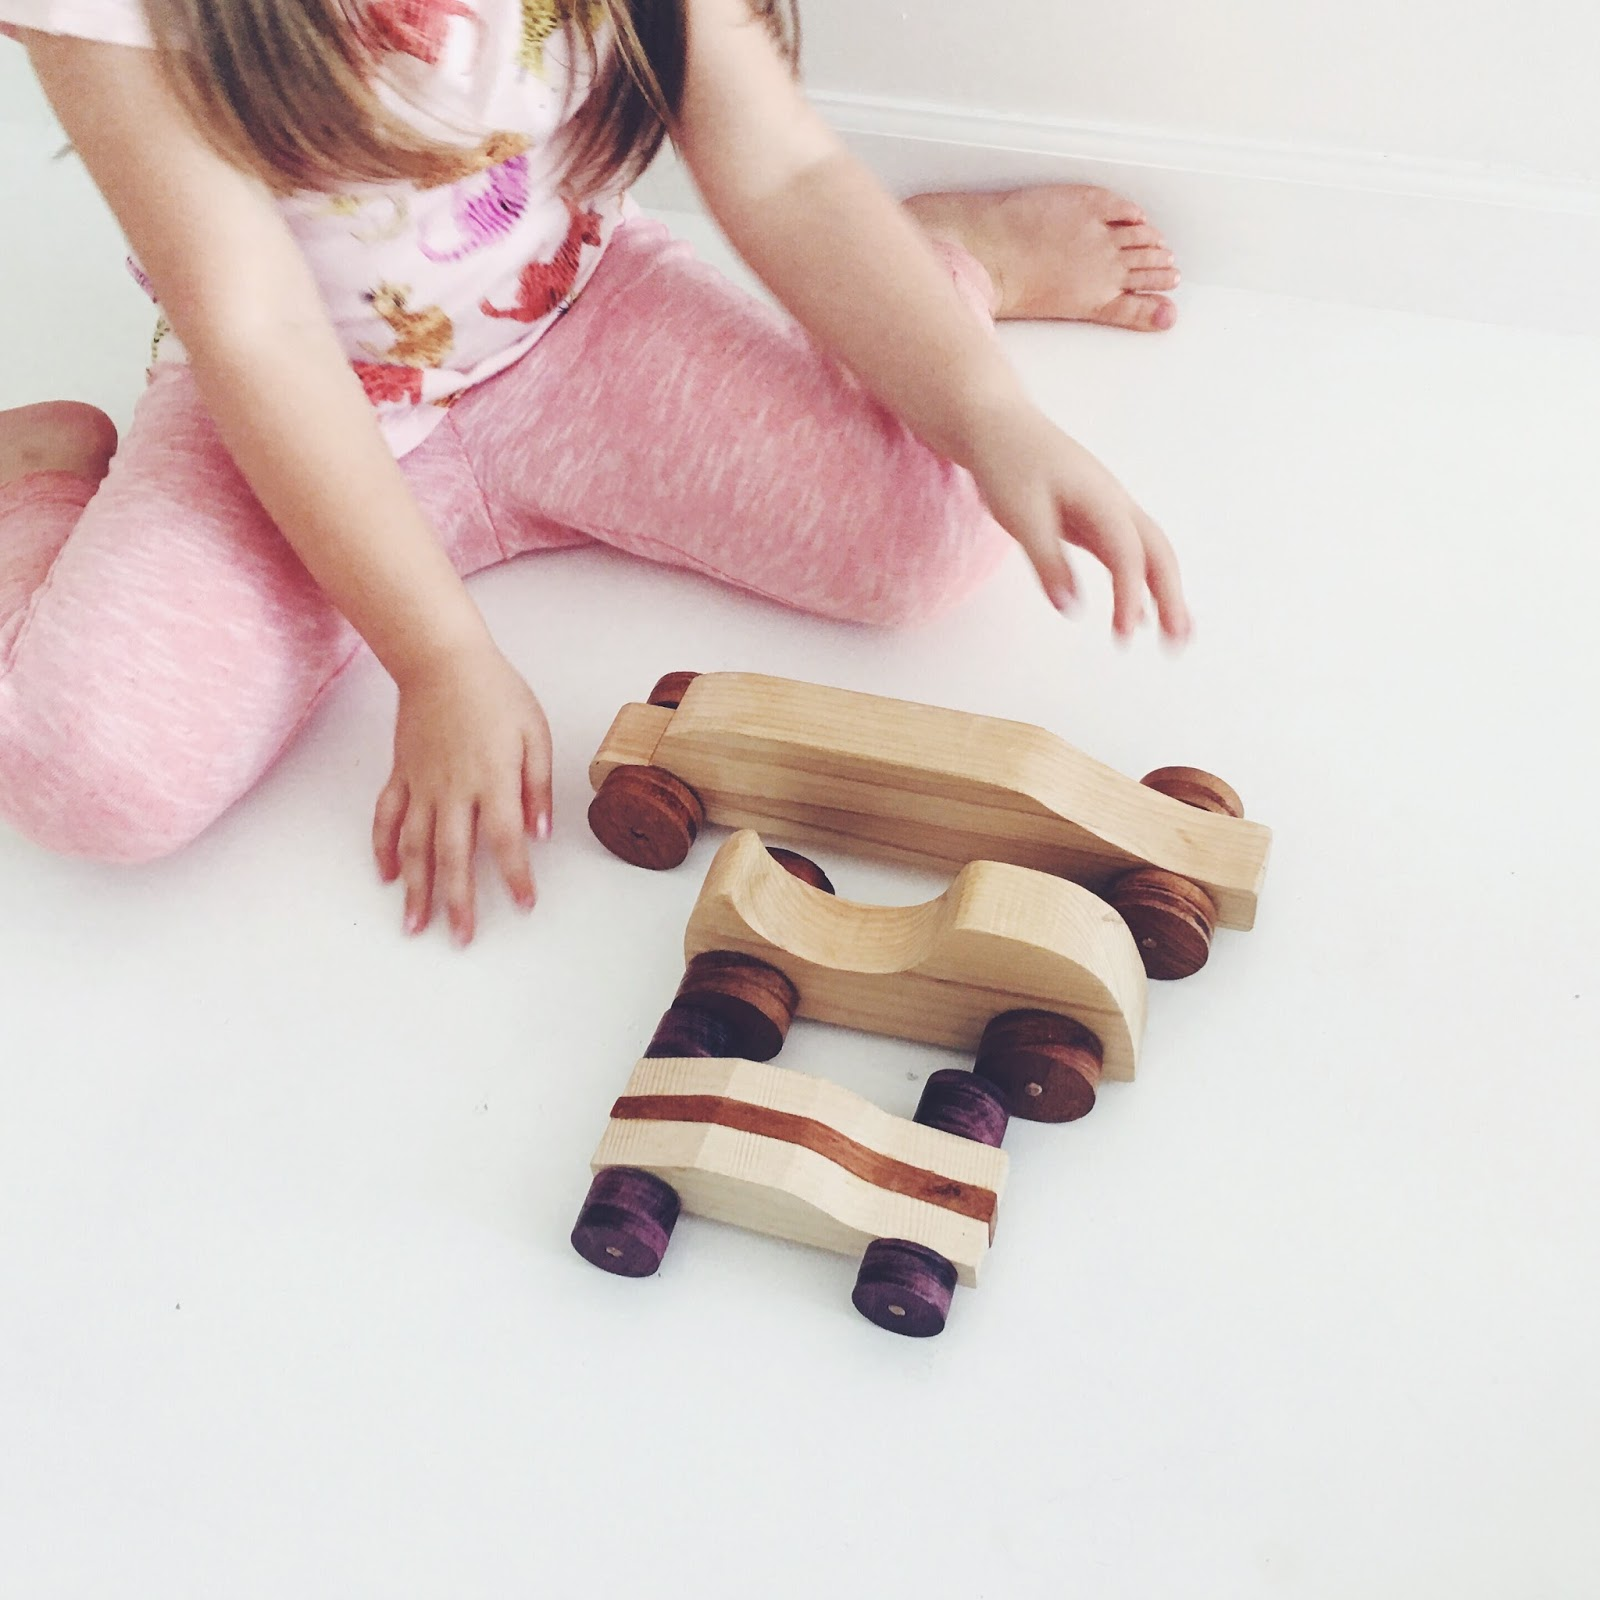 WOODEN TOYS FOR LITTLE ONES